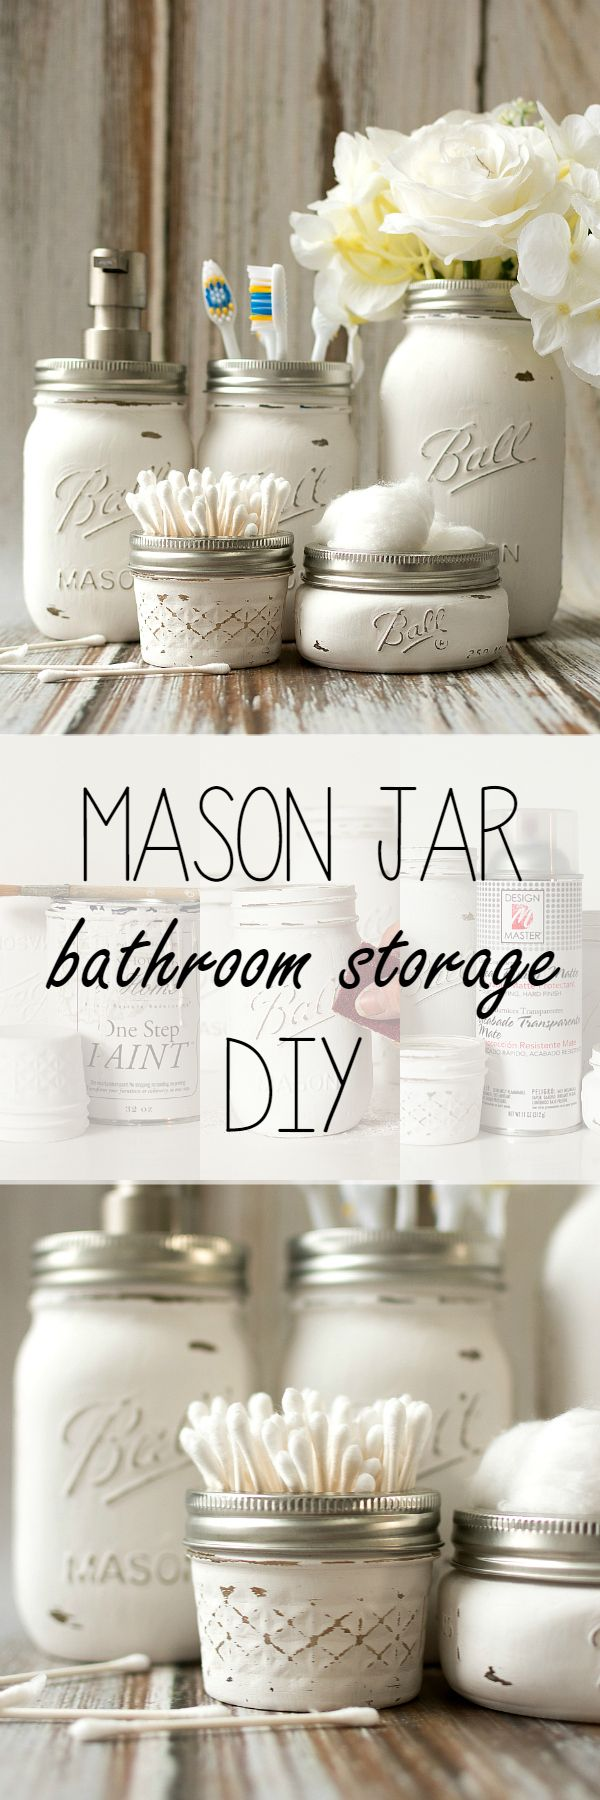 Photo of Mason Jar Bathroom Storage & Accessories – Mason Jar Crafts Love